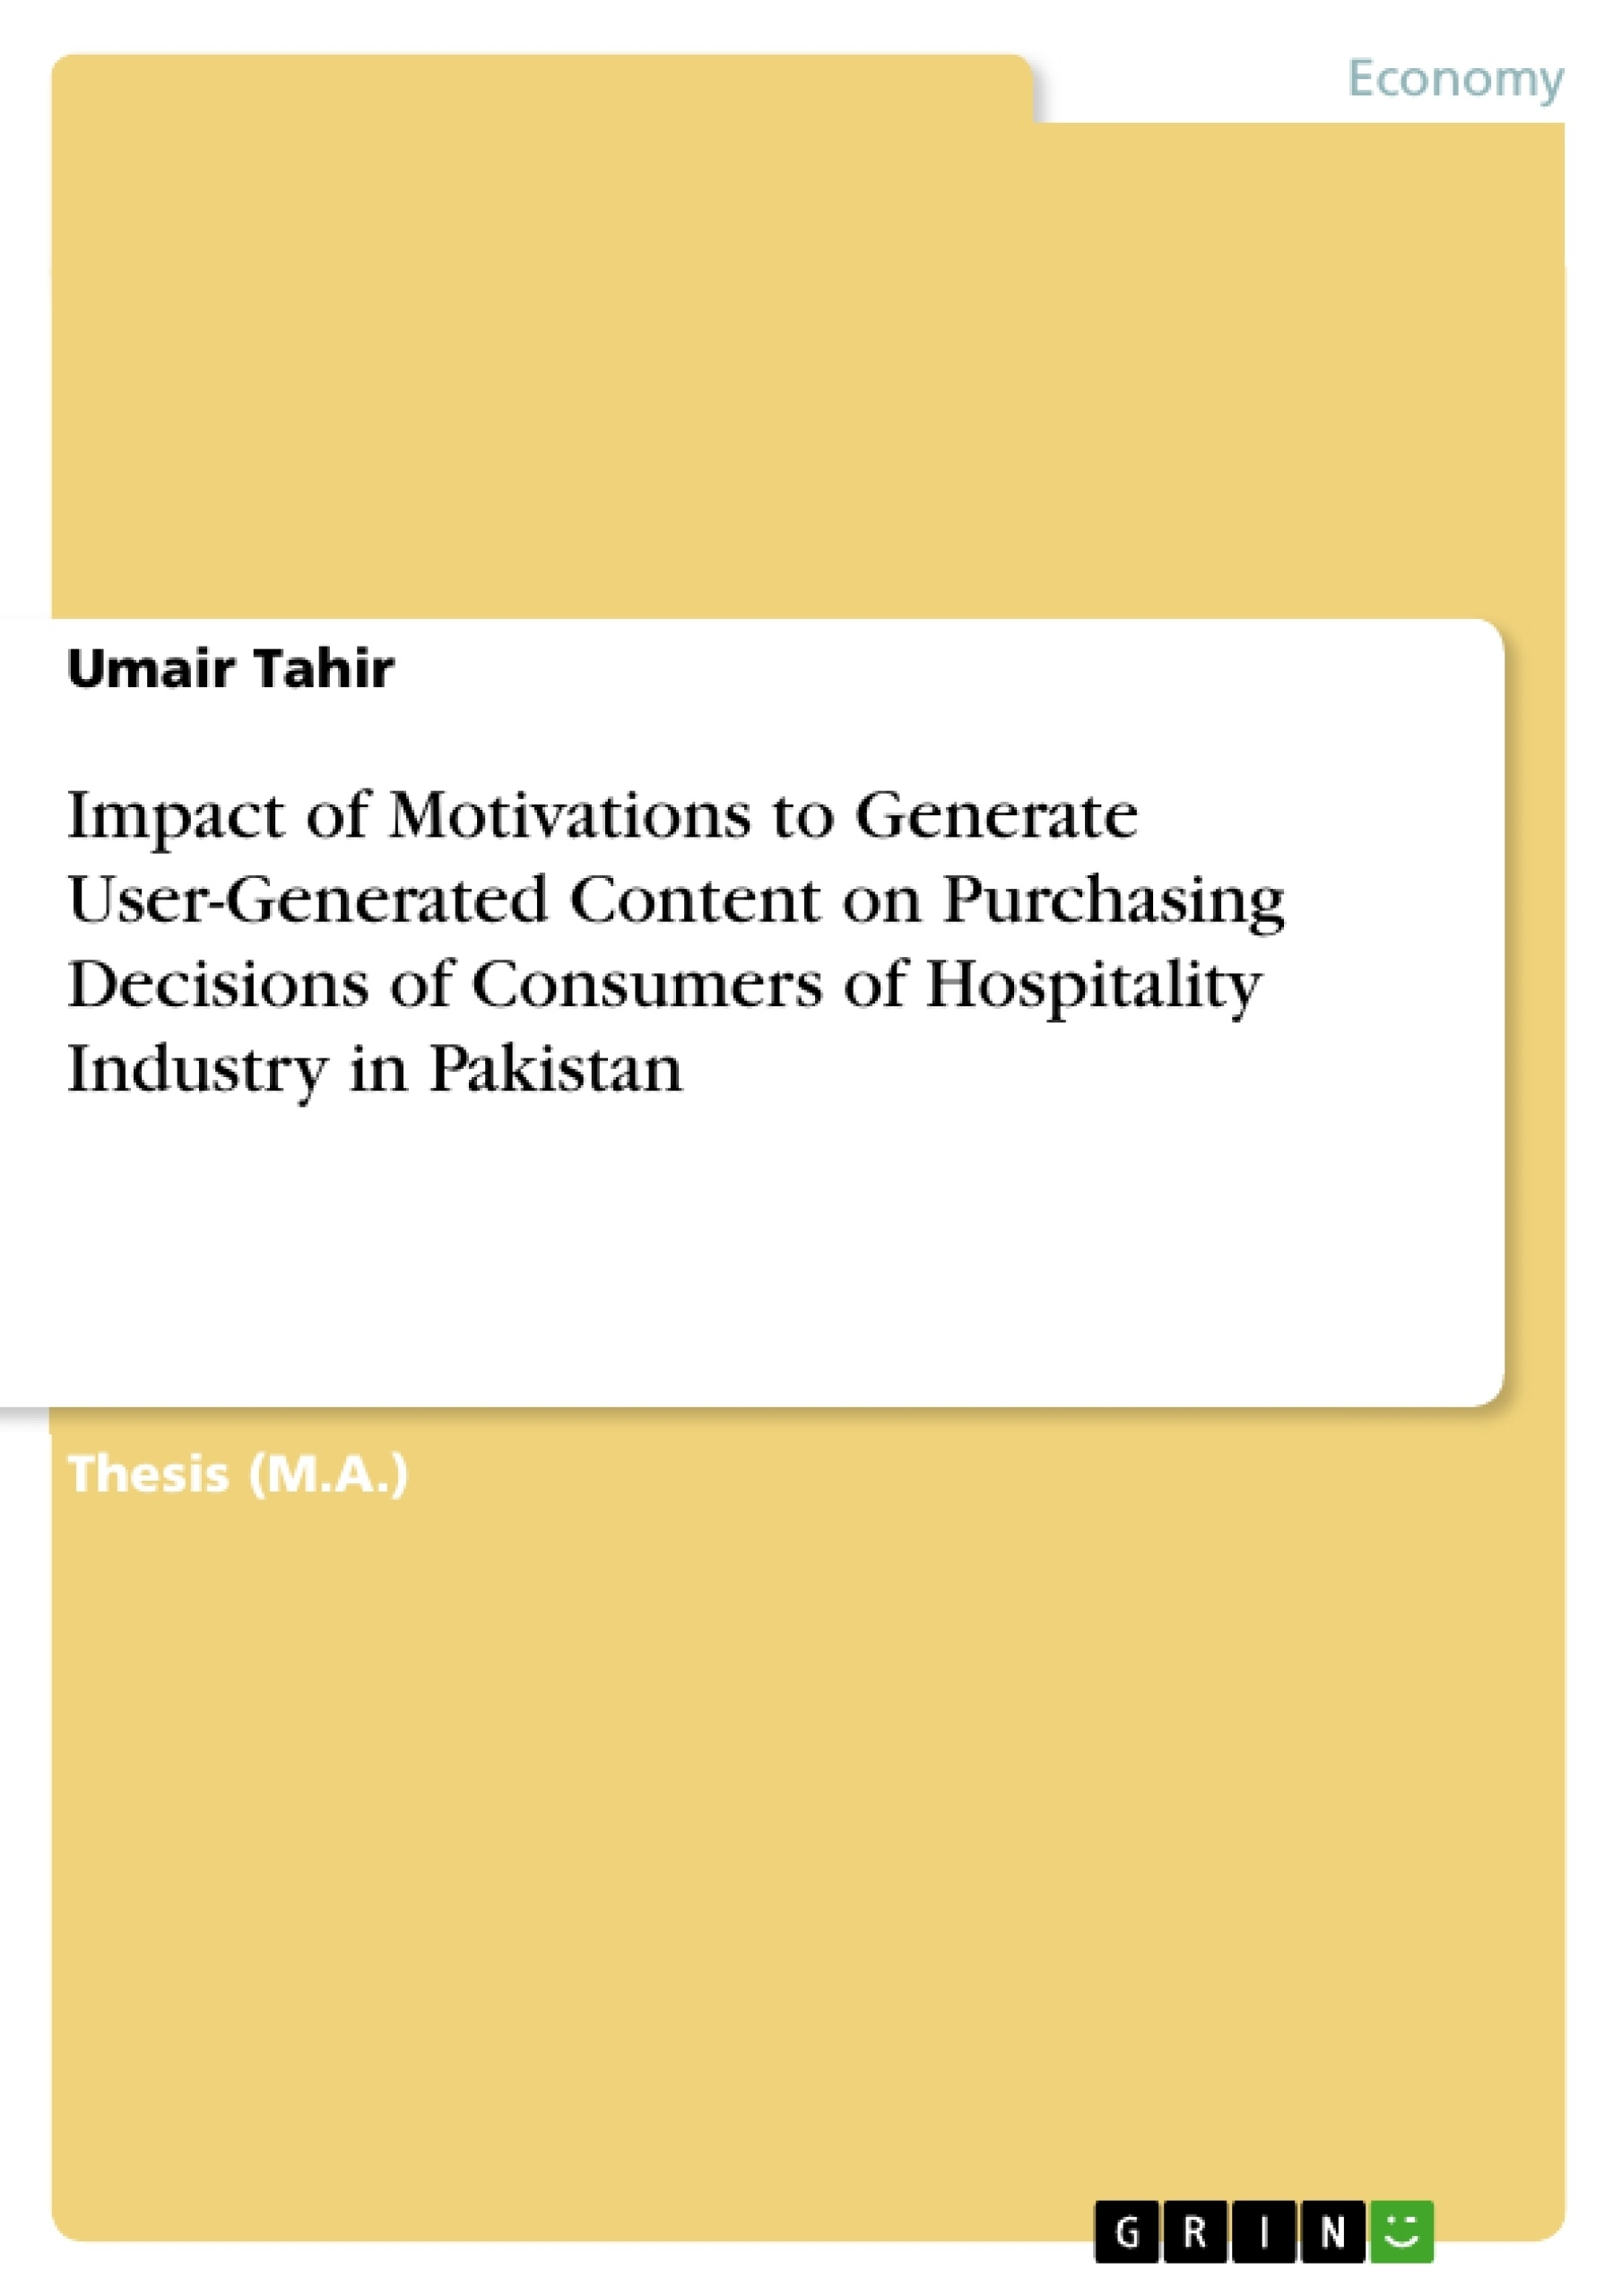 Title: Impact of Motivations to Generate User-Generated Content on Purchasing Decisions of Consumers of Hospitality Industry in Pakistan